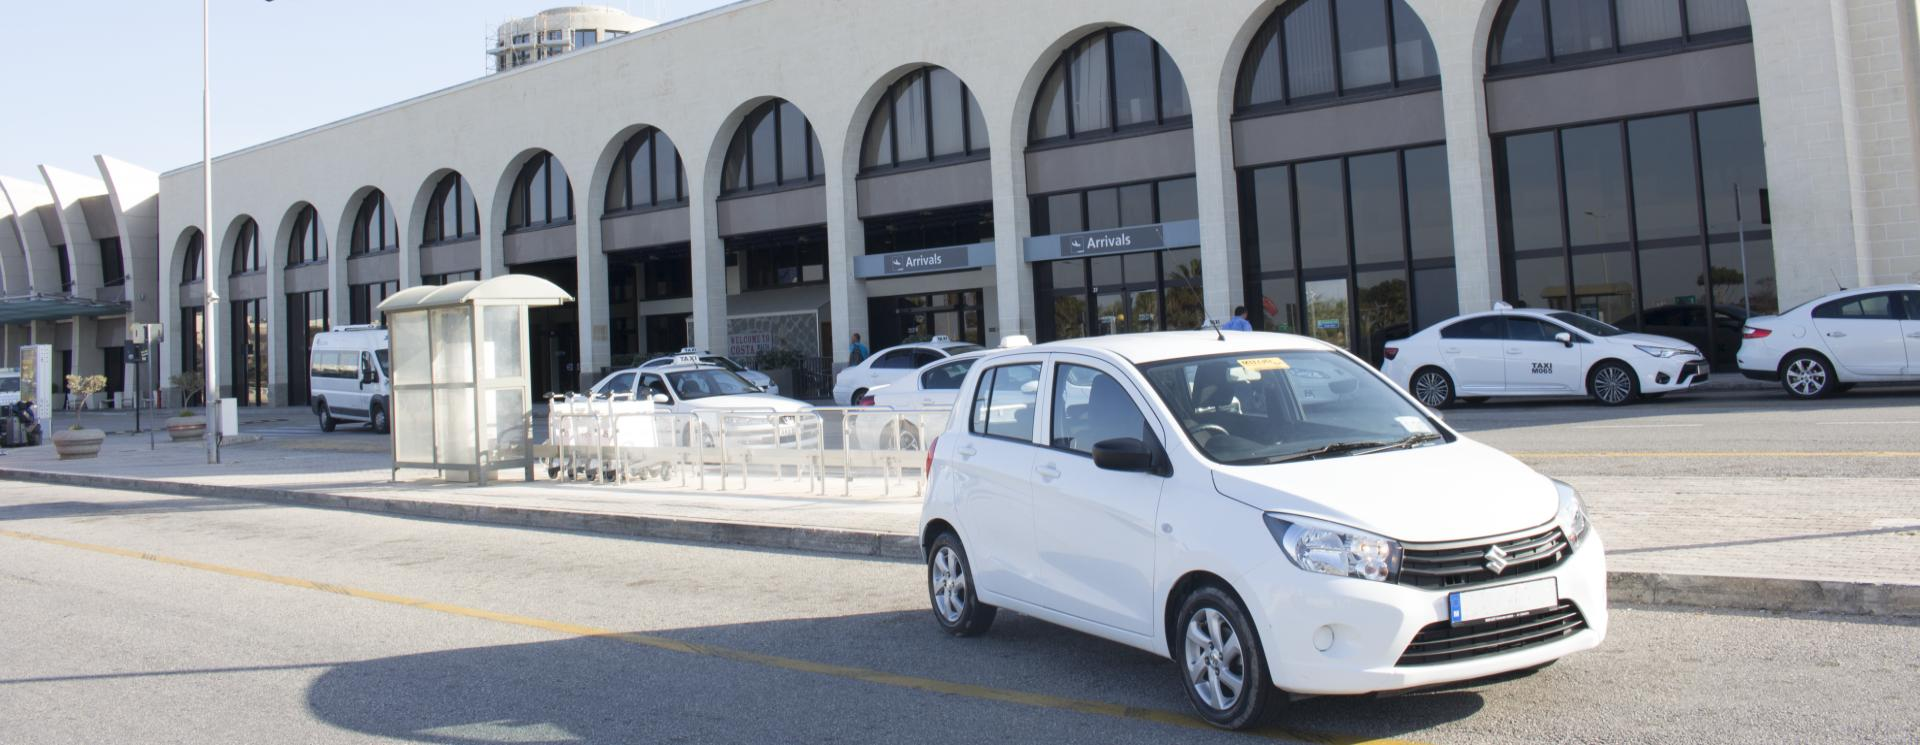 Car Rental Malta Airport